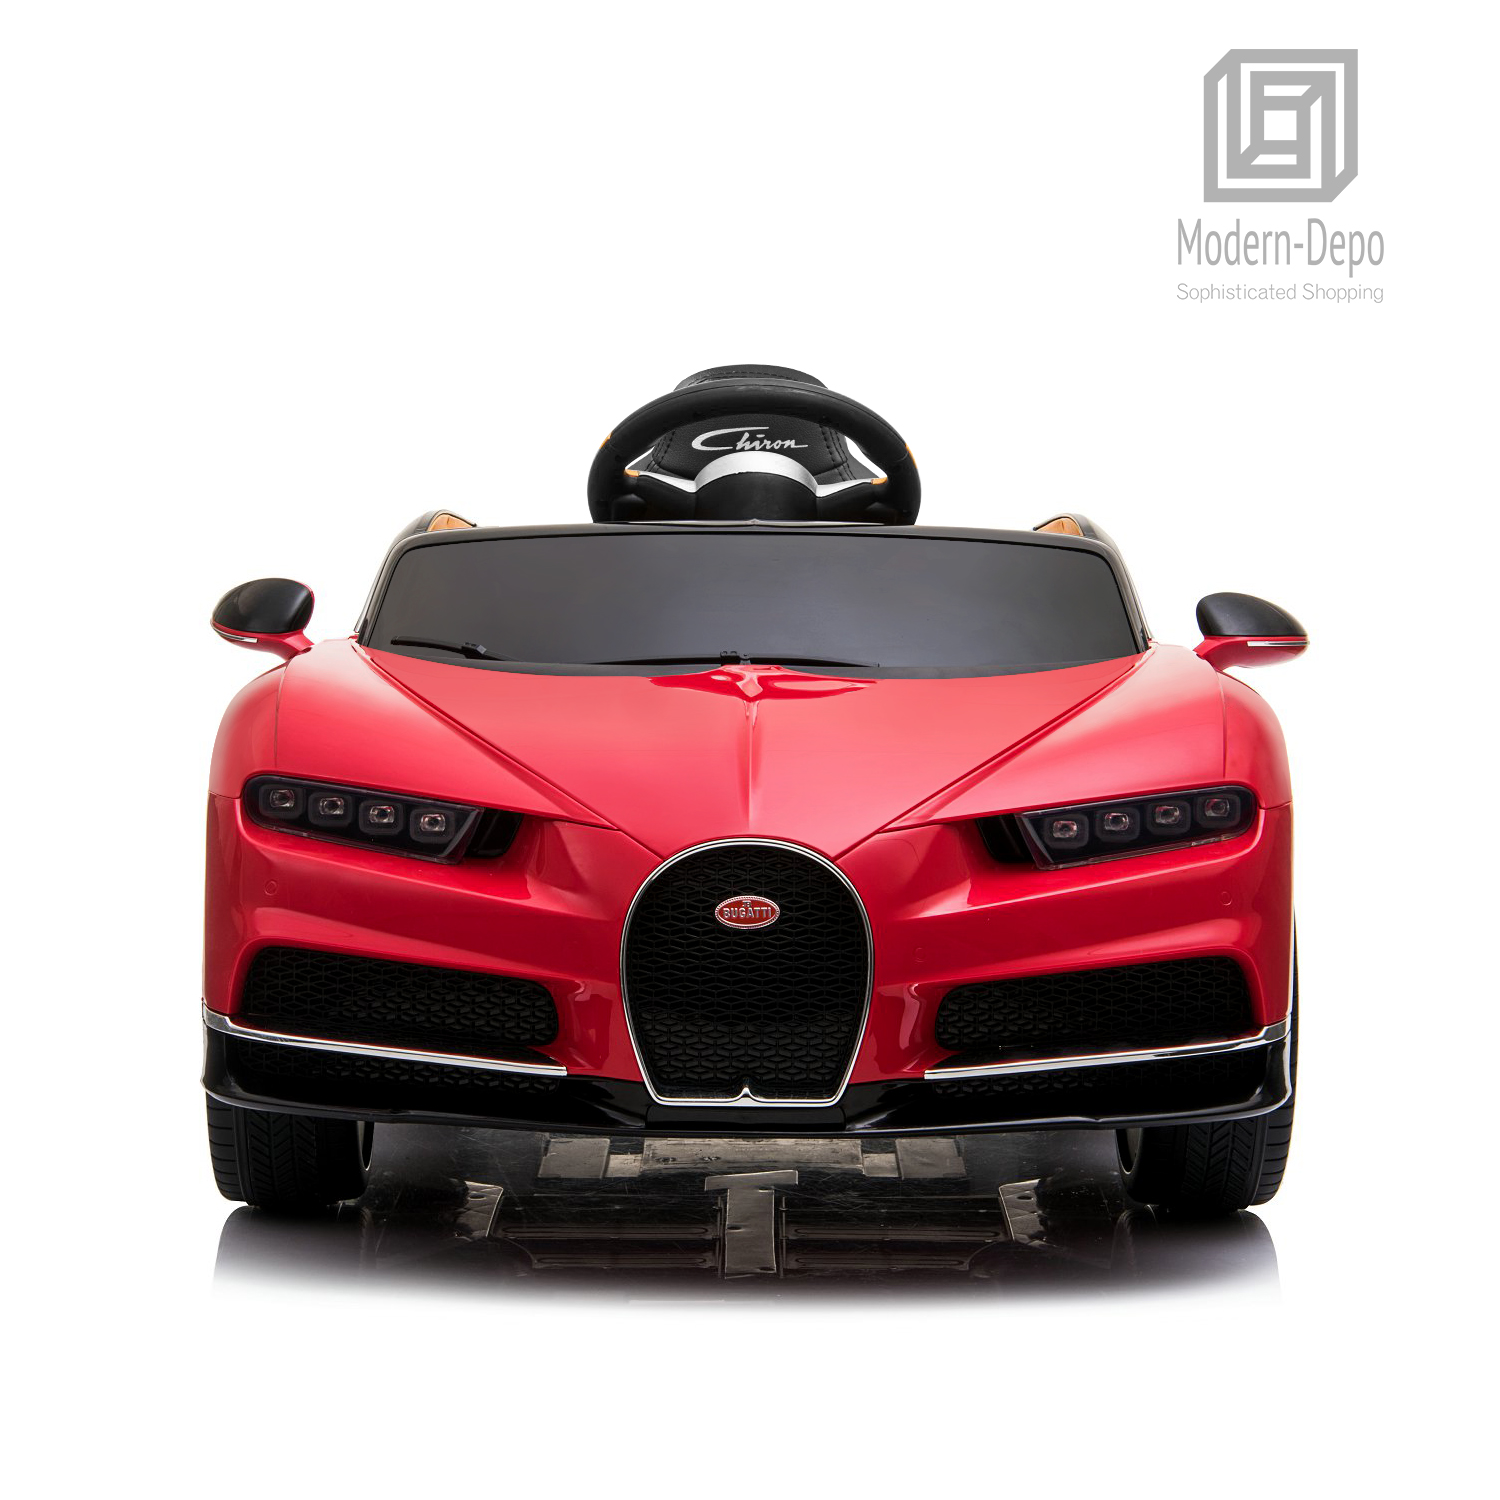 Bugatti-Chiron-12V-Kids-Ride-On-Car-with-Remote-Control-High-Speed-Motor miniature 30